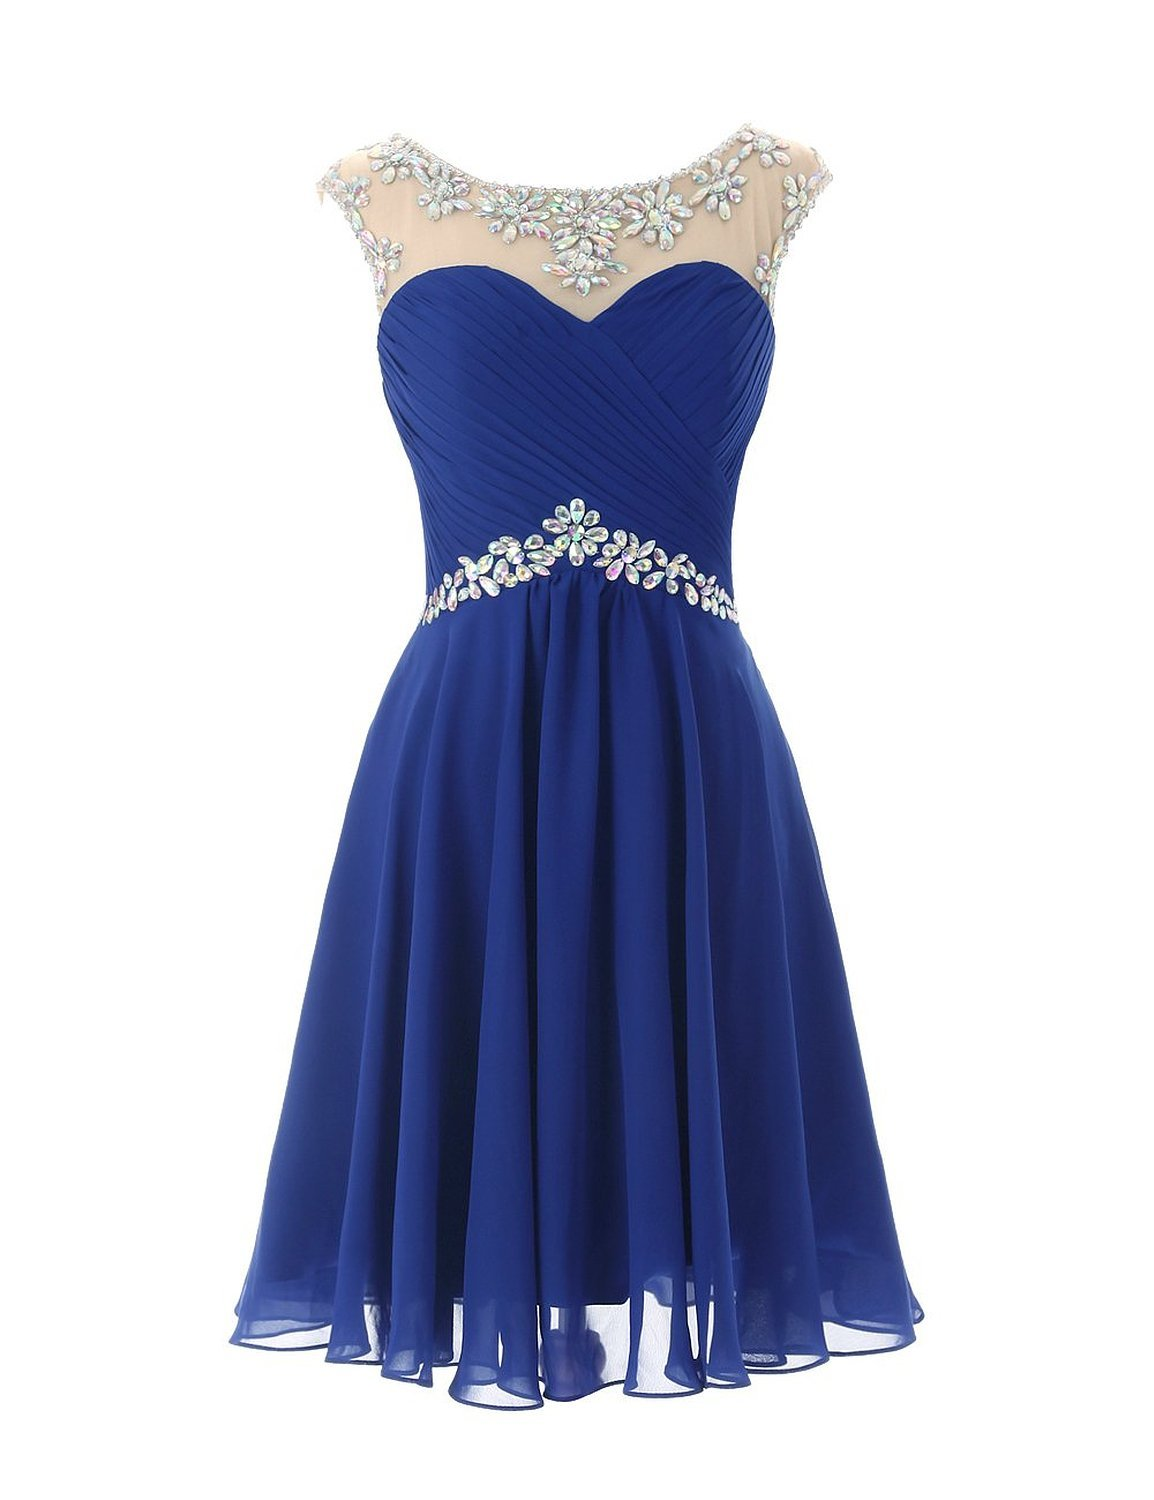 Primary image for Beaded Chiffon Prom Party Dresses 2017 Short Cheap Homecoming Dresses For Junior